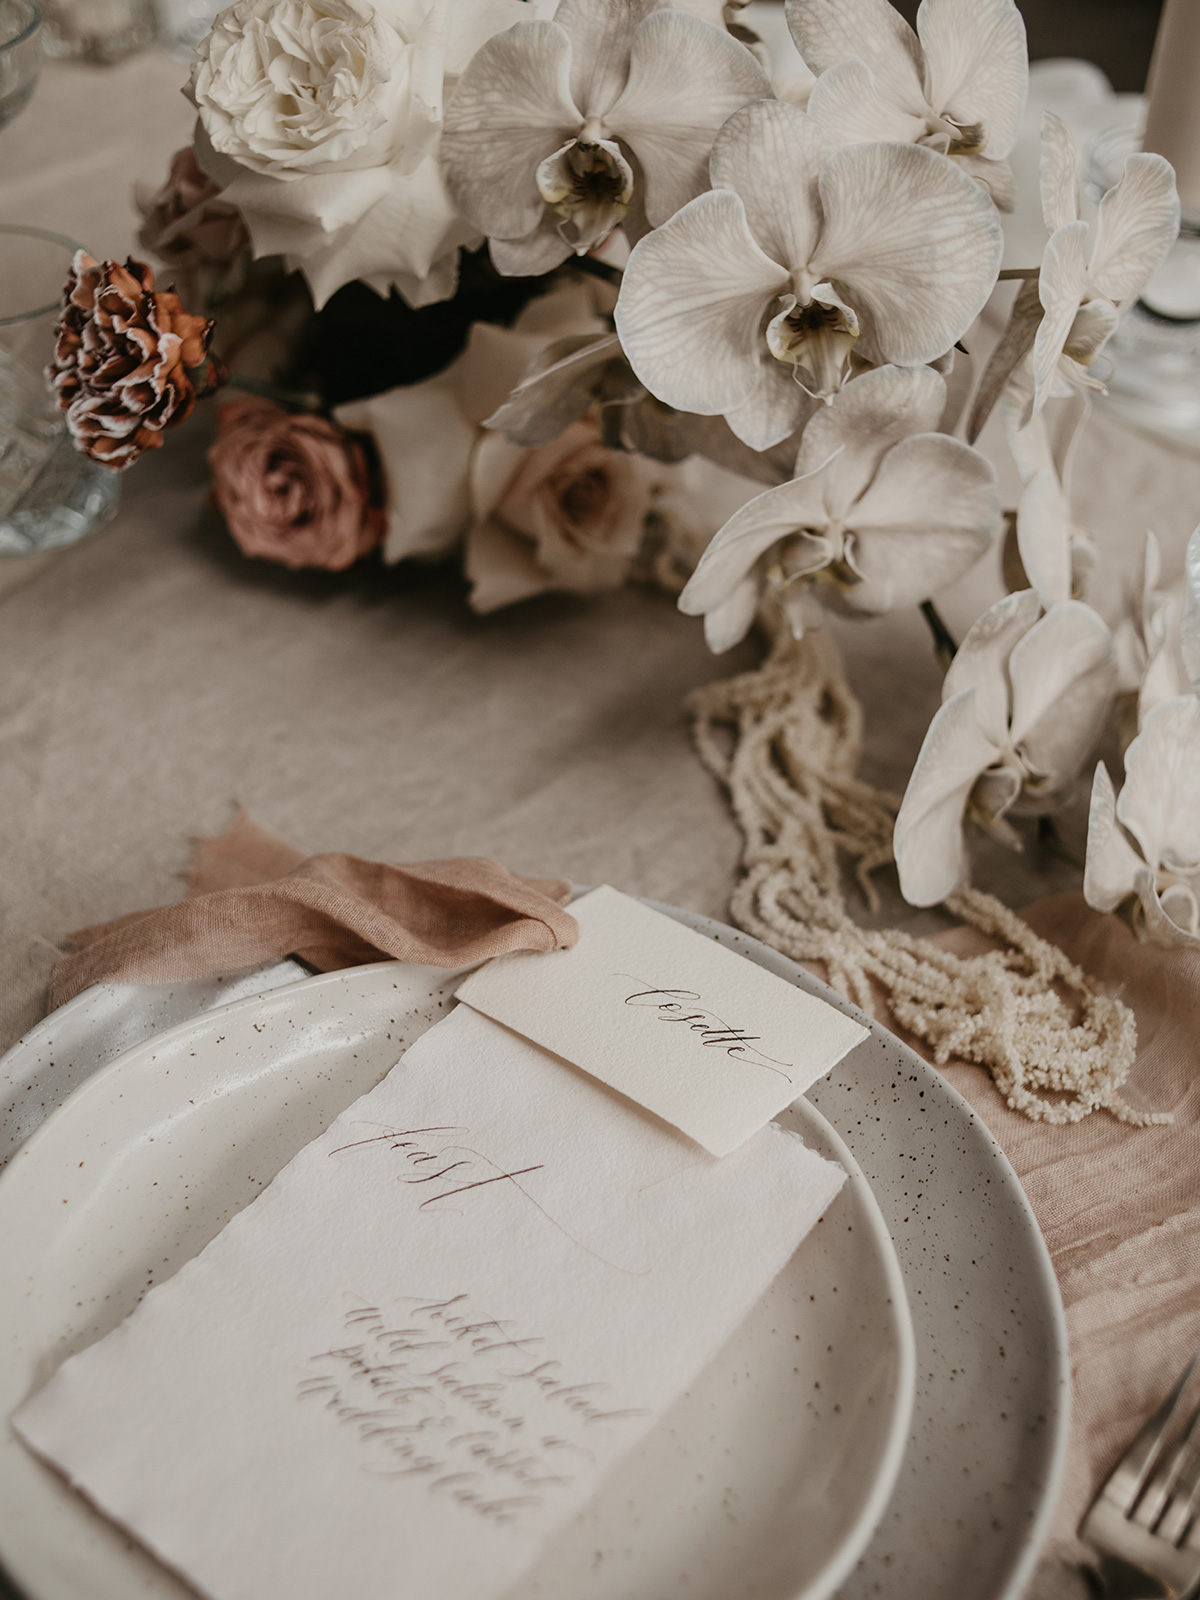 At Home | Holiday Décor Inspiration: A Wintry Tablescape